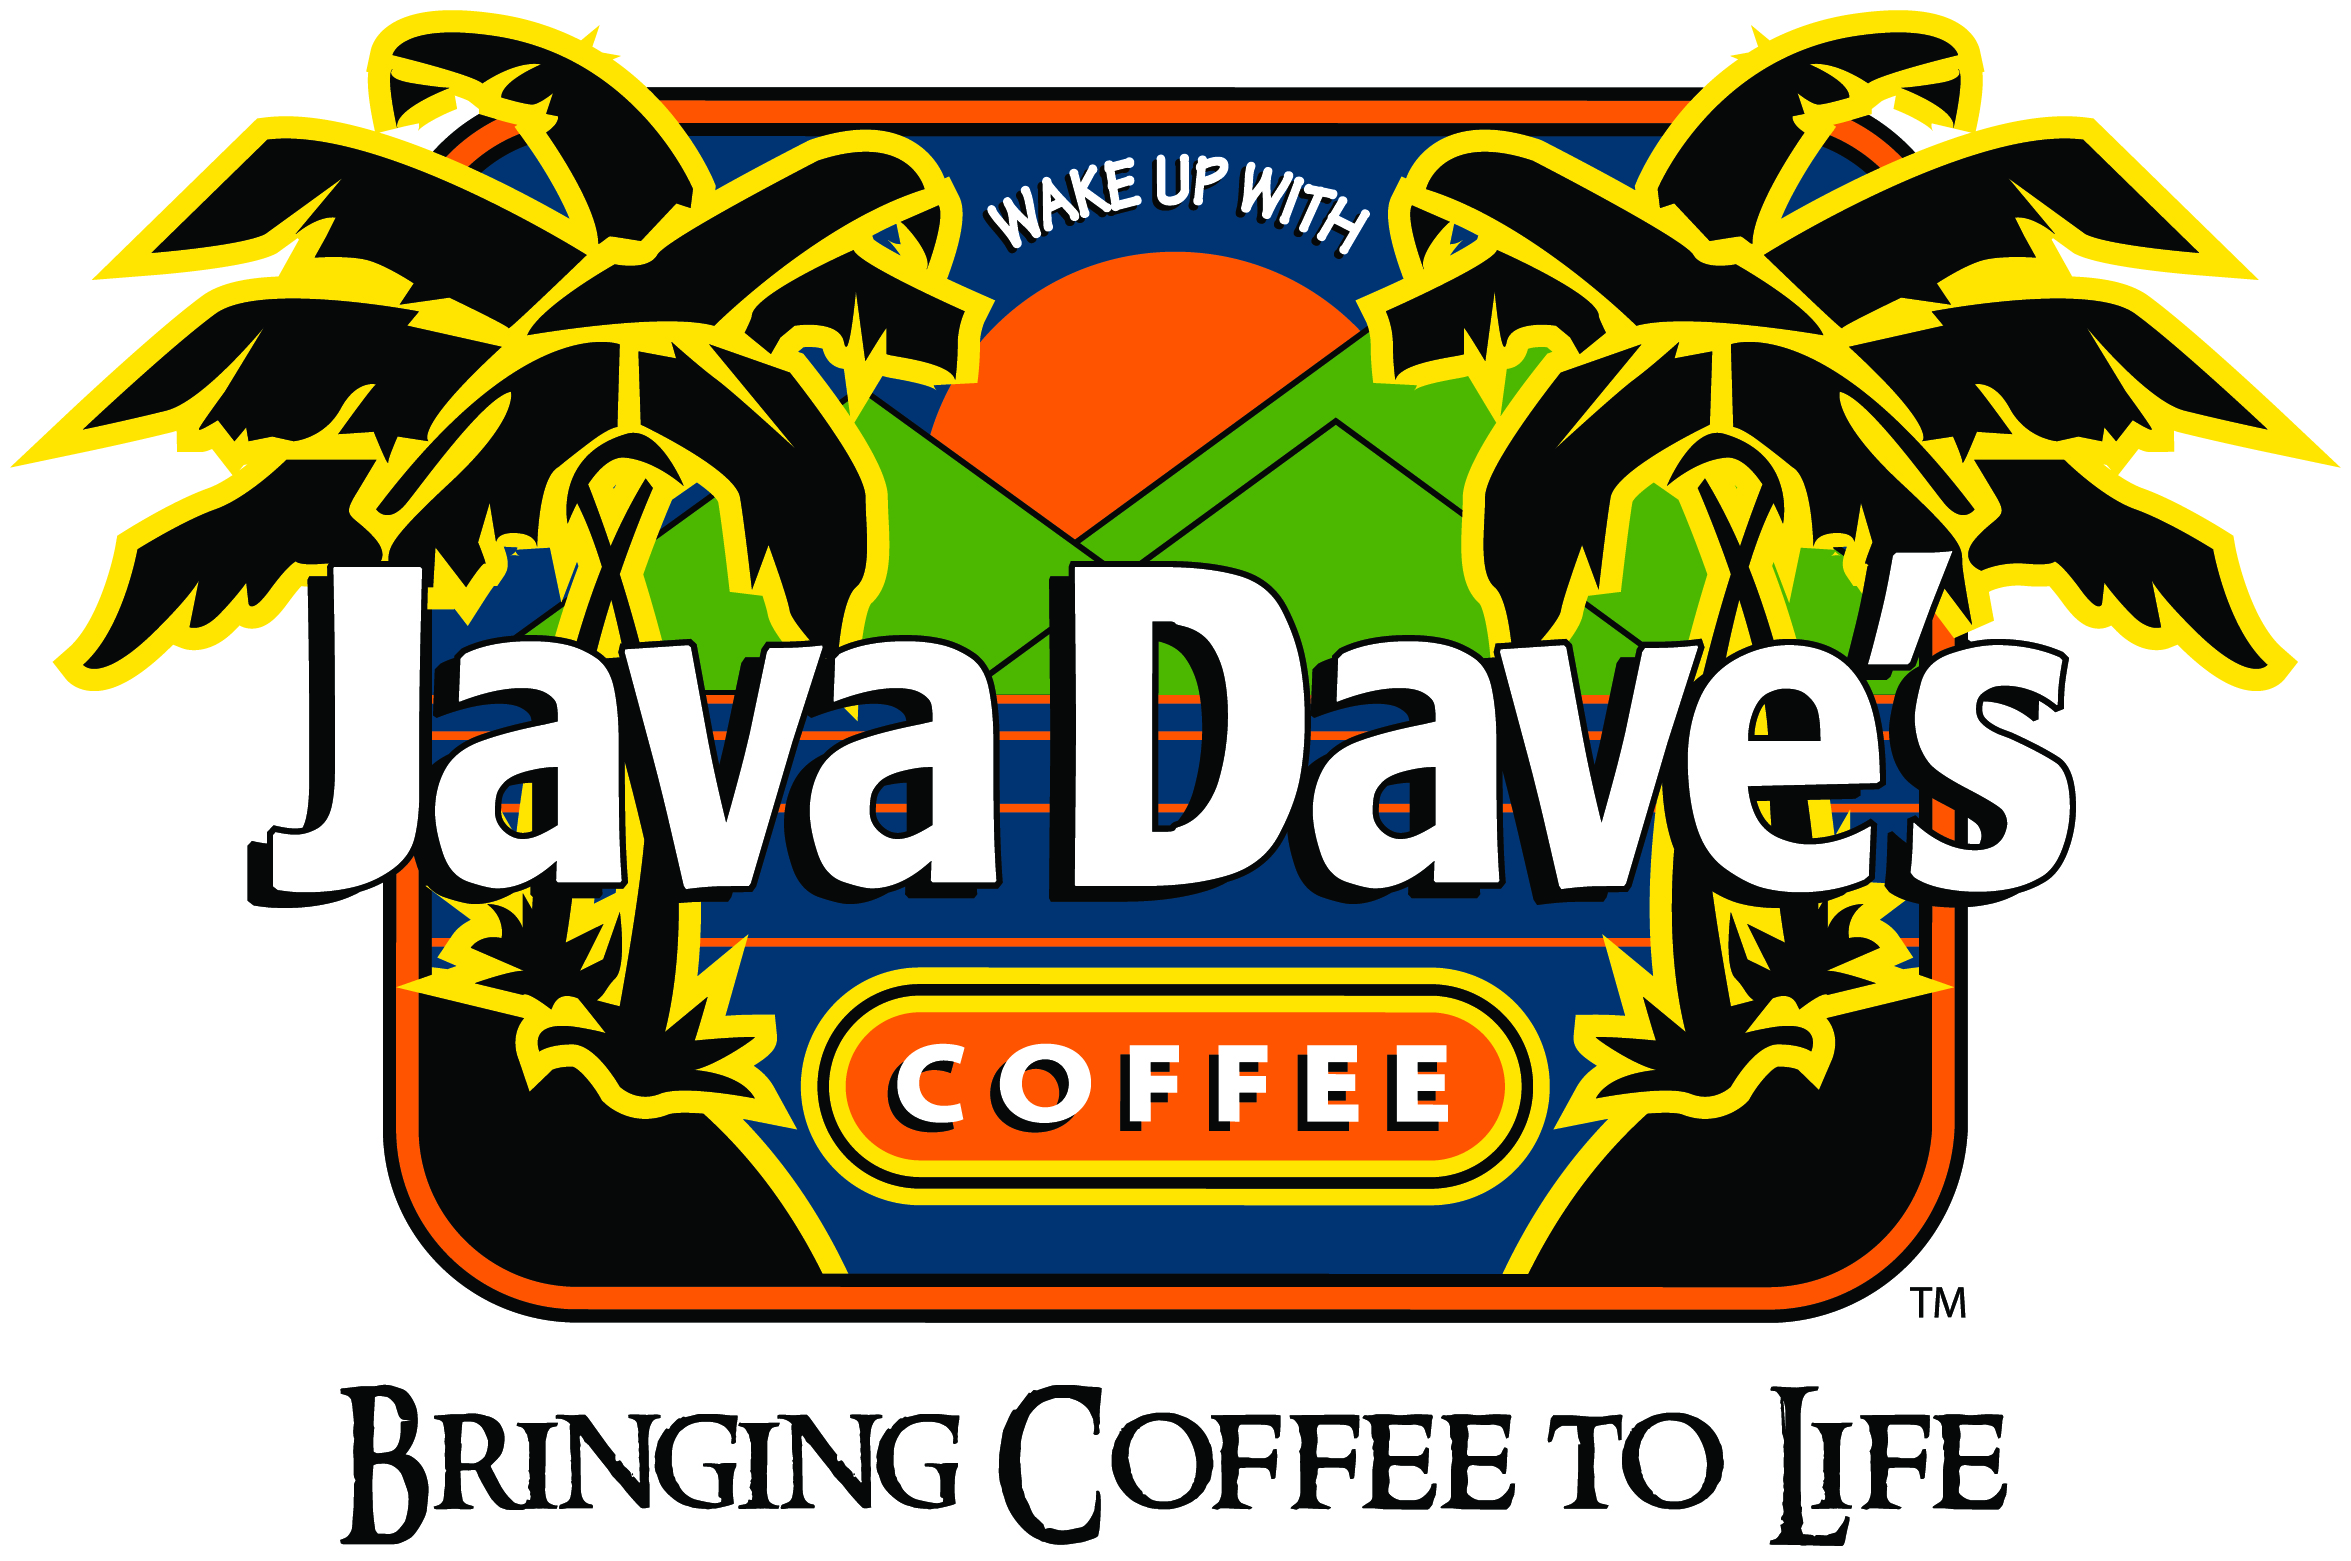 java-daves-logo.jpg